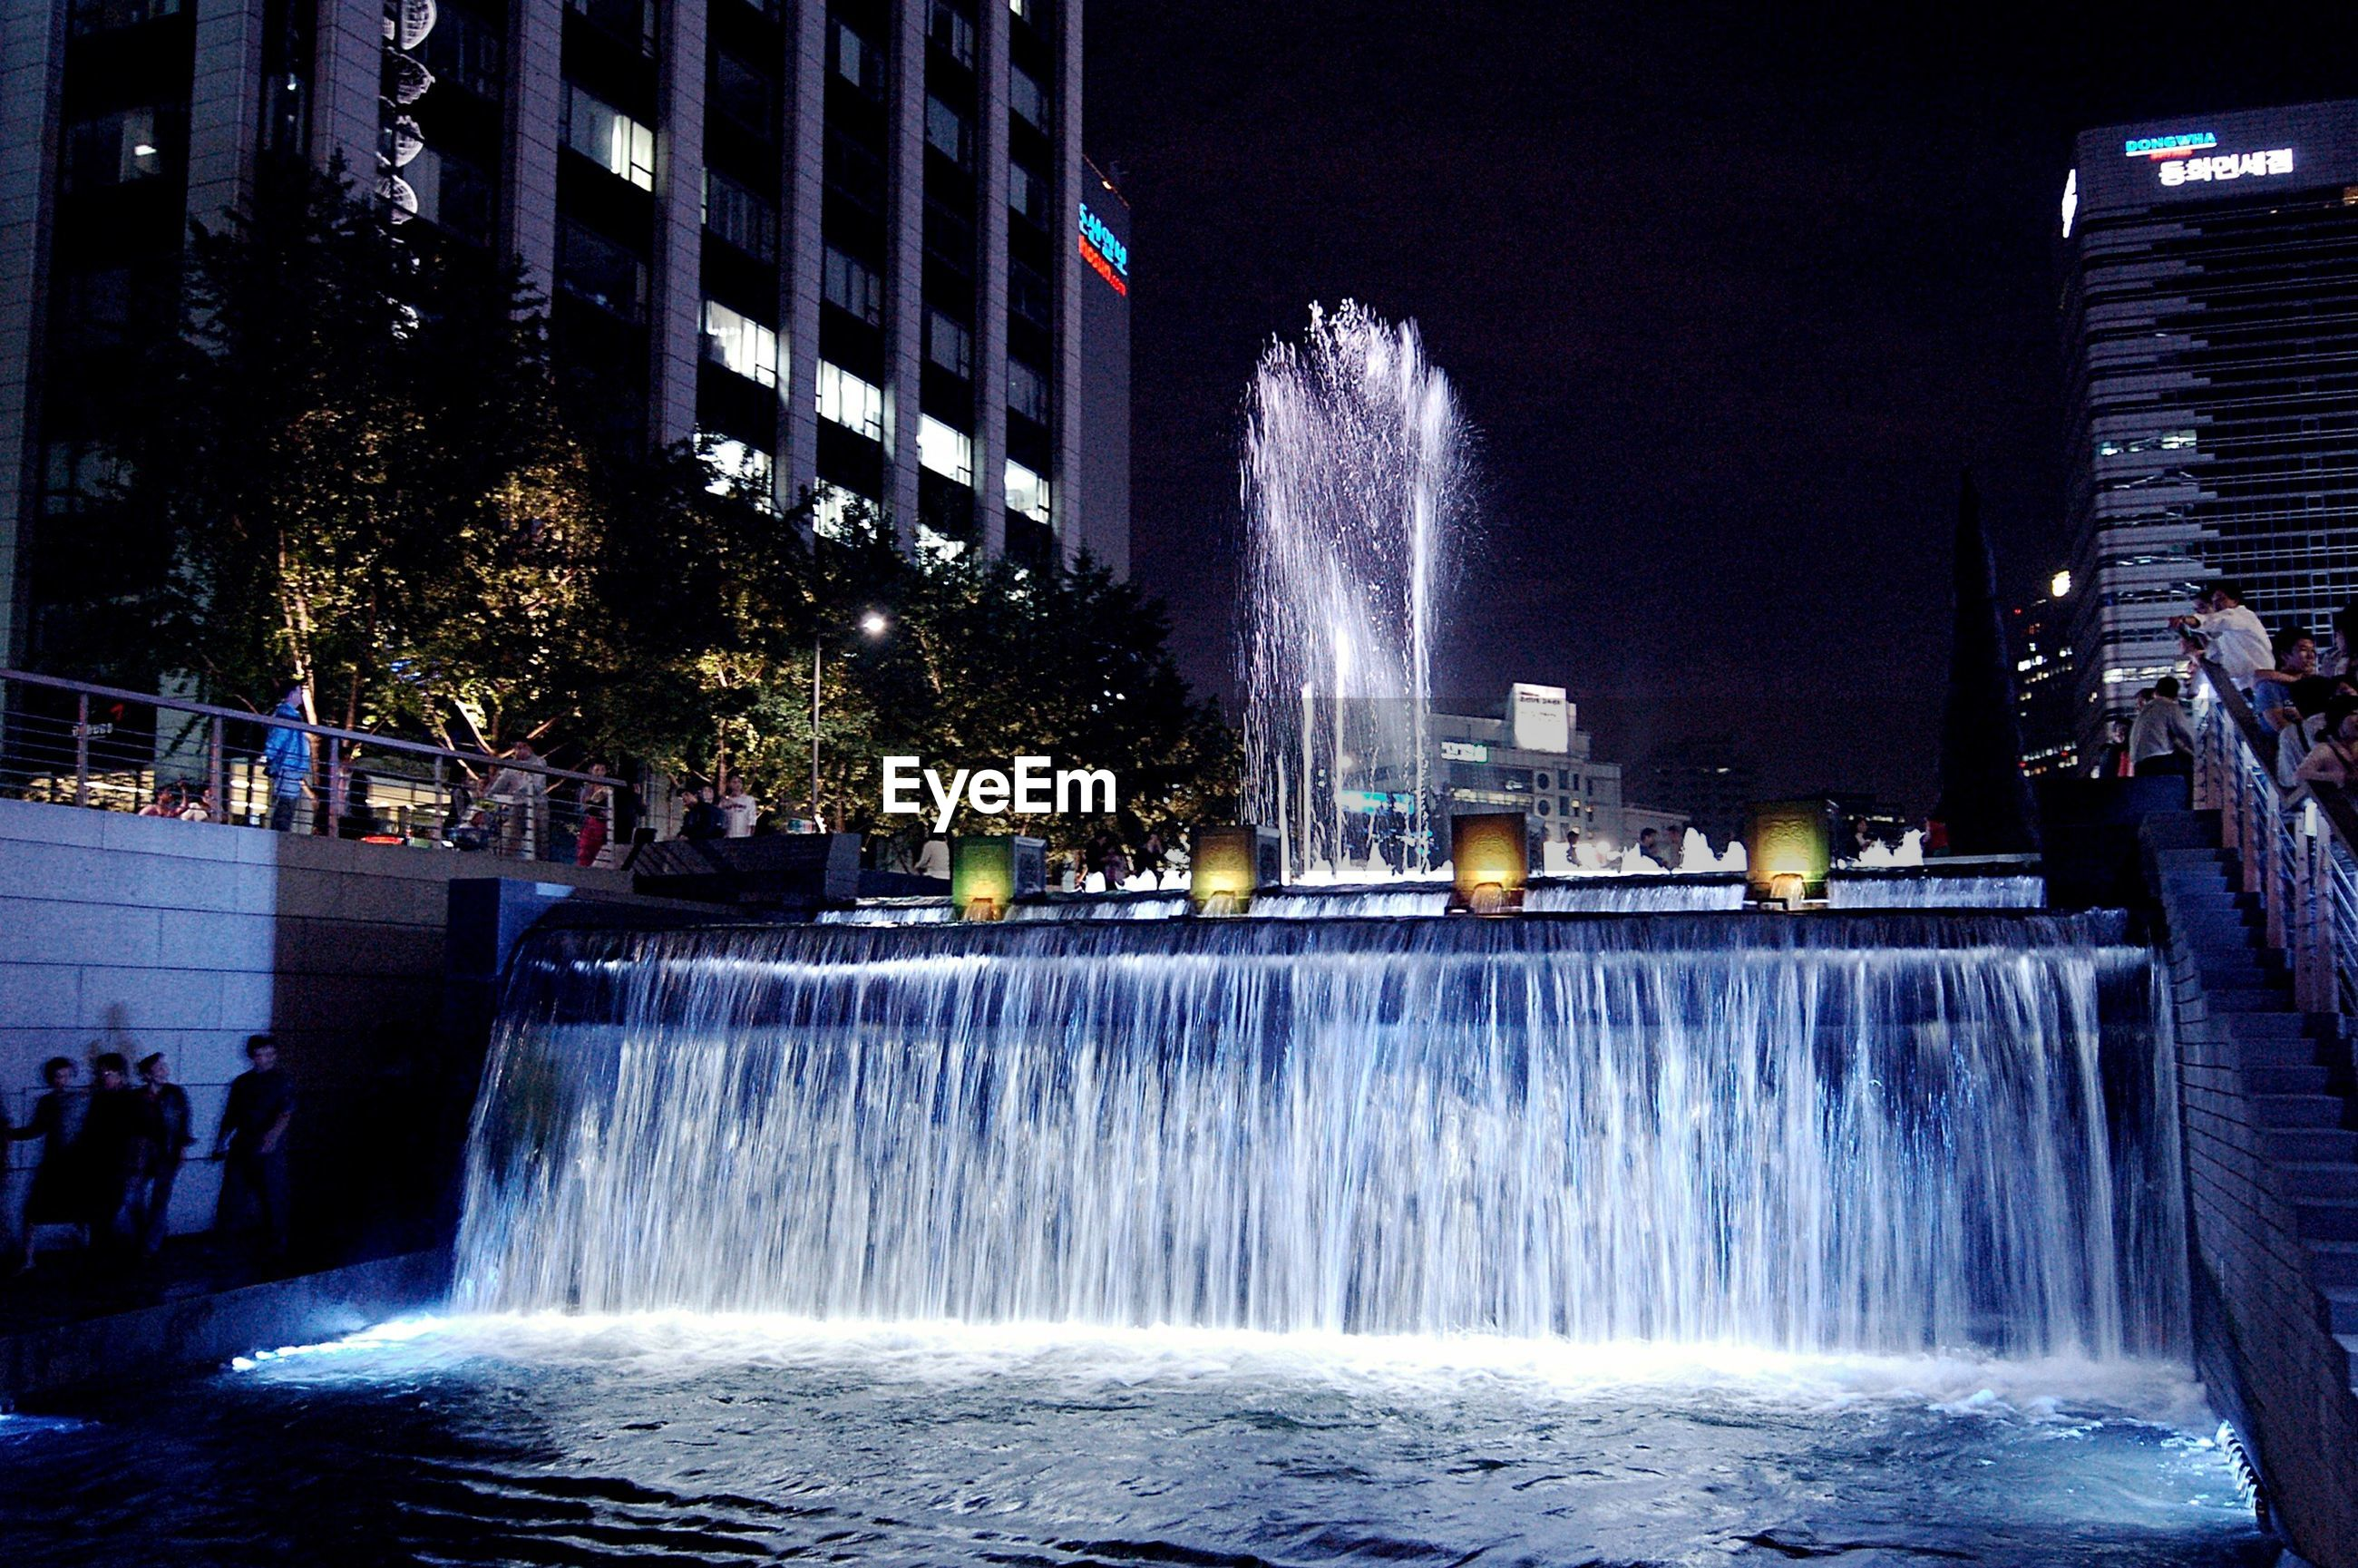 water, night, building exterior, long exposure, motion, architecture, built structure, illuminated, fountain, splashing, waterfront, spraying, city, flowing water, blurred motion, reflection, waterfall, building, outdoors, river